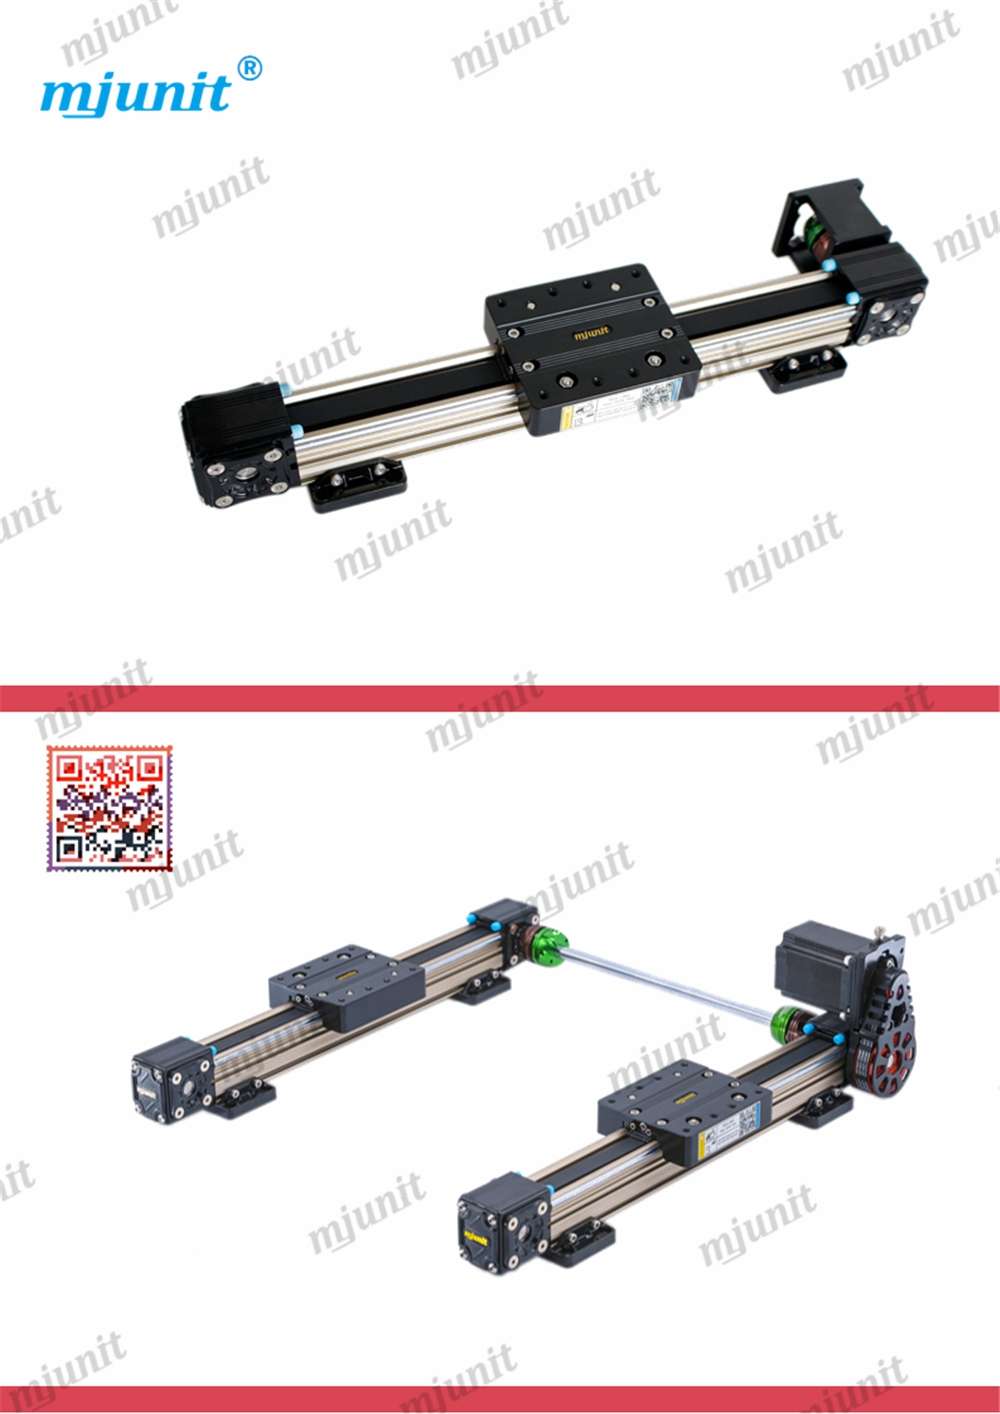 mjunit MJ40 high speed toothed belt driven linear guide rail for 3d printer Linear Actuator Linear Motion 3d Printer Parts